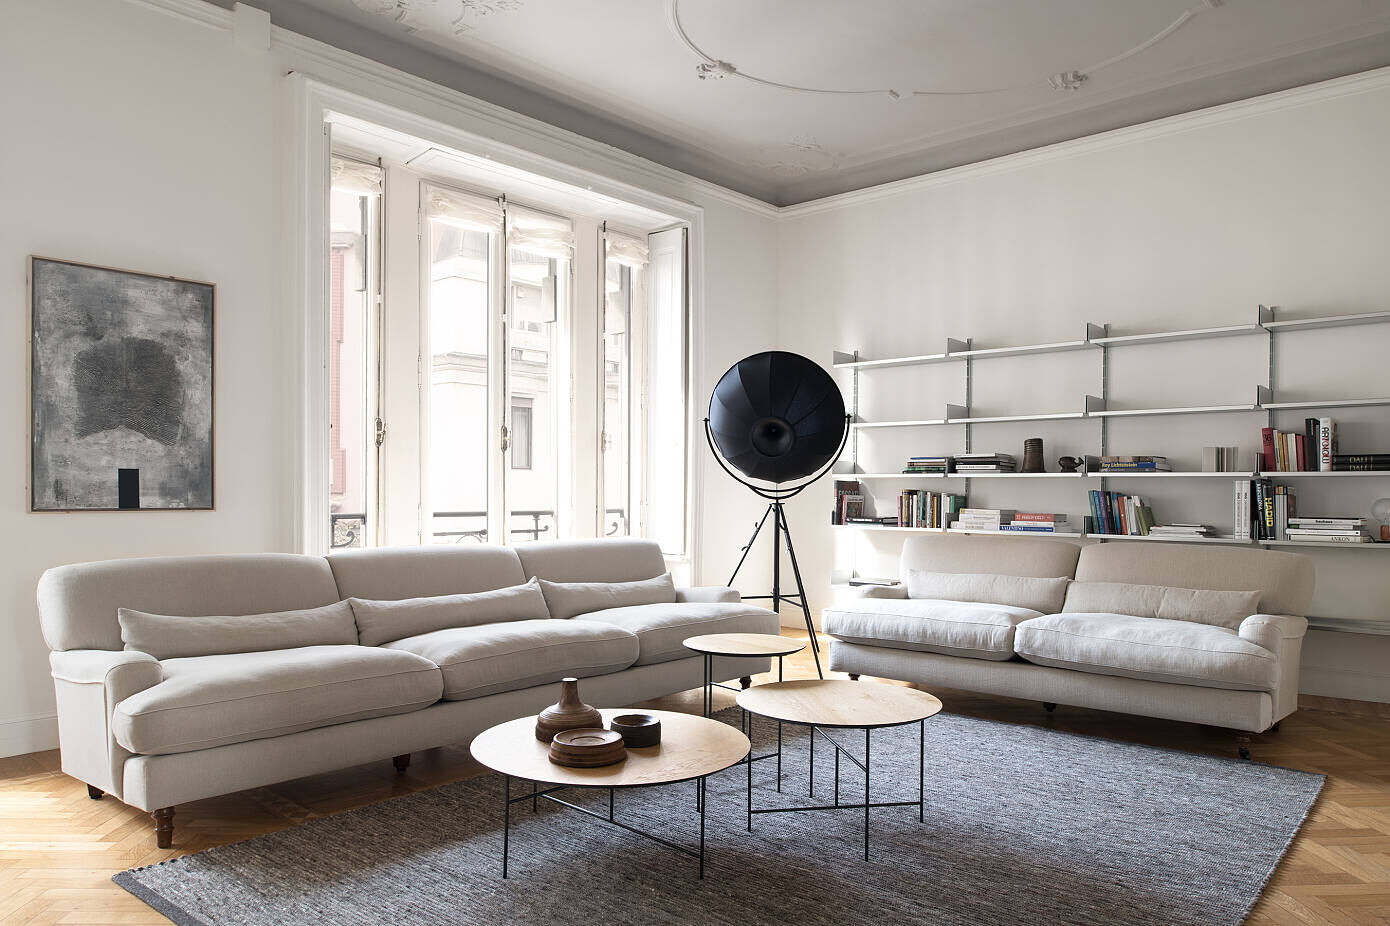 Apartment by Alessandra Sacchi